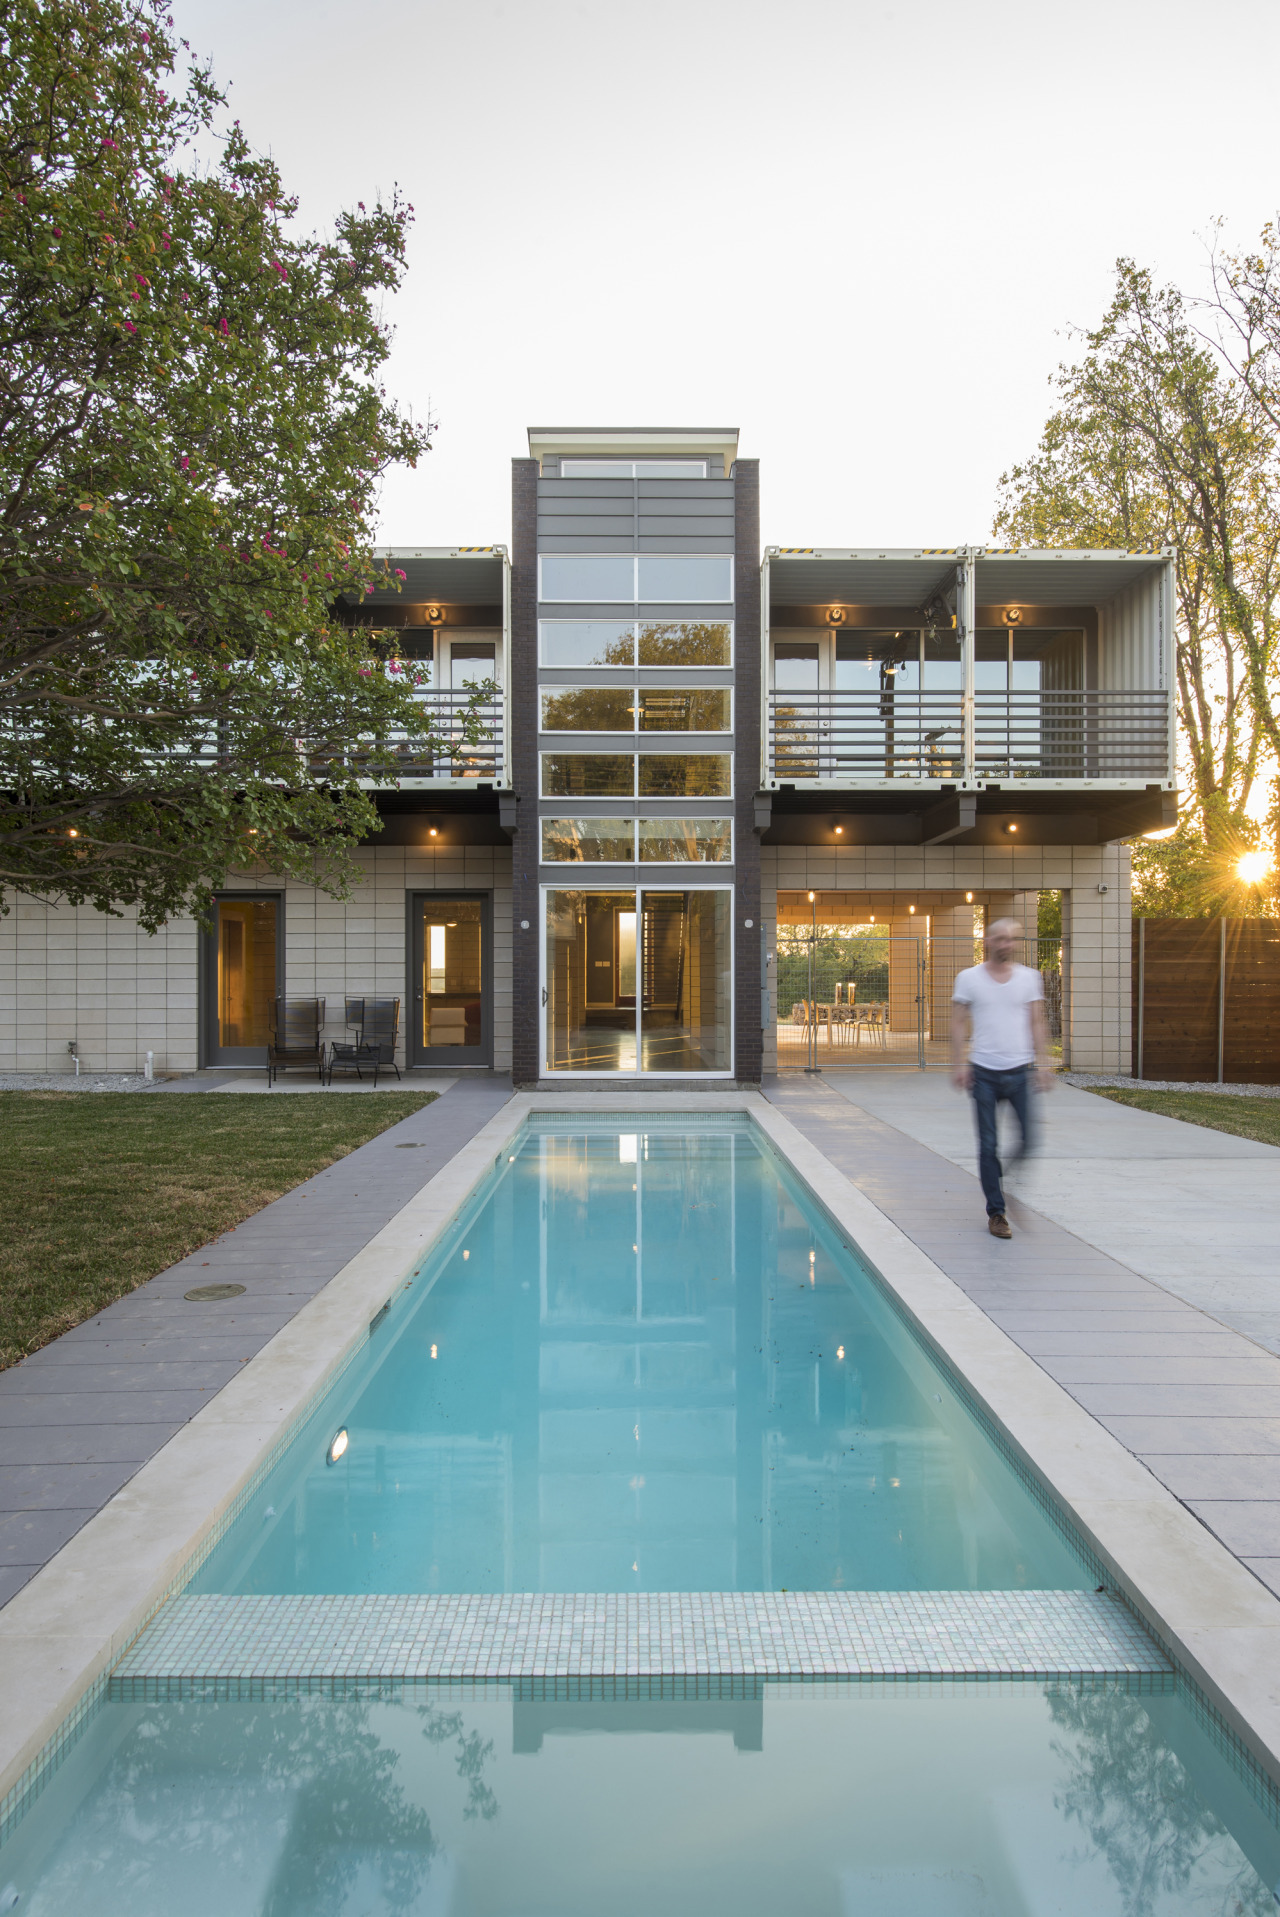 Average Cost to Build A 4 Bedroom House Elegant top 20 Shipping Container Home Designs and their Costs In 2020